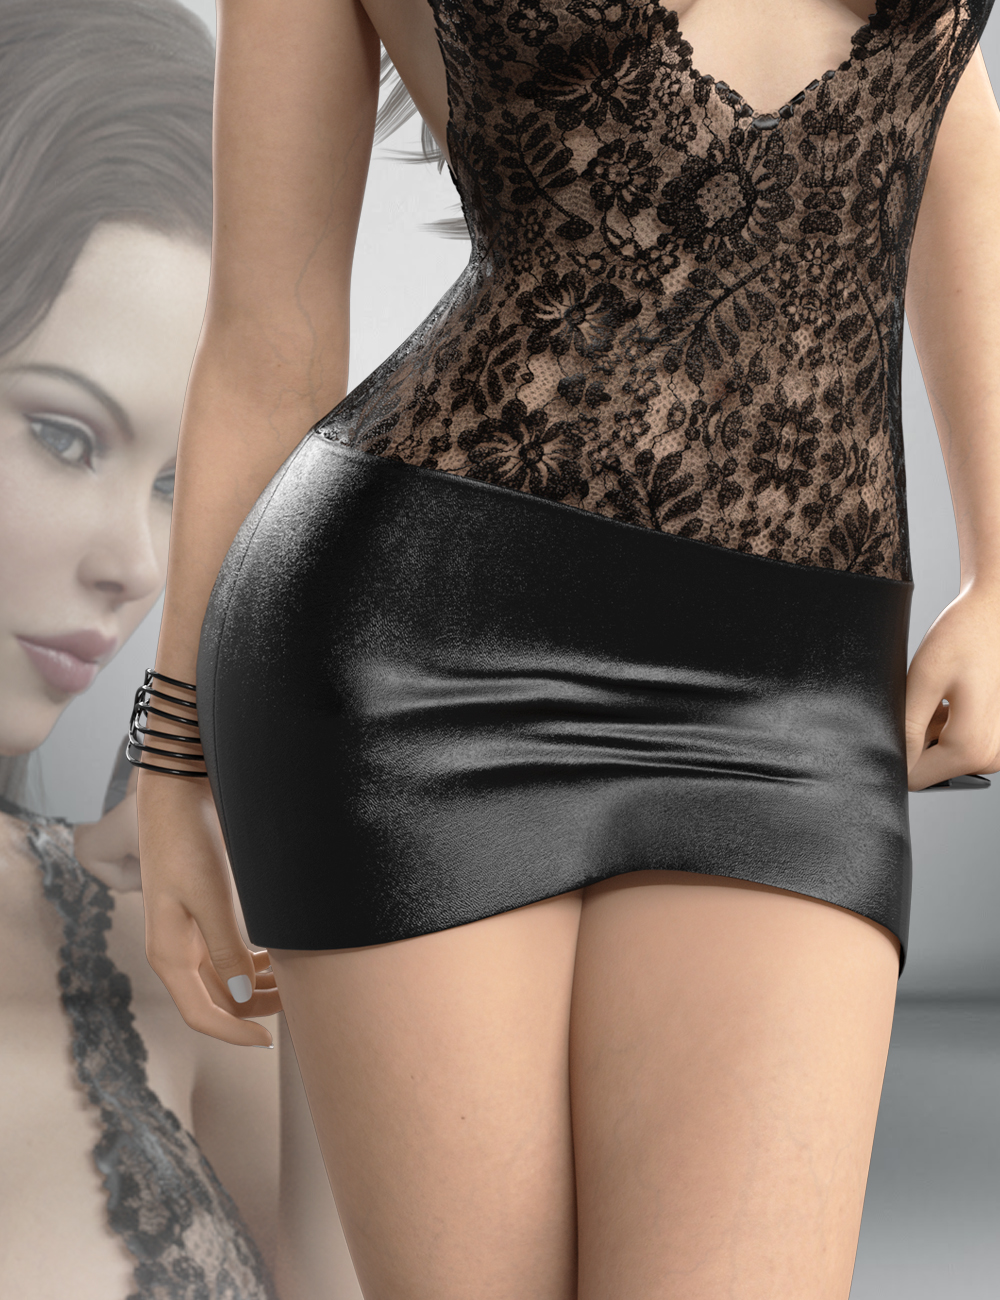 Vip Lace for Genesis 8 Females